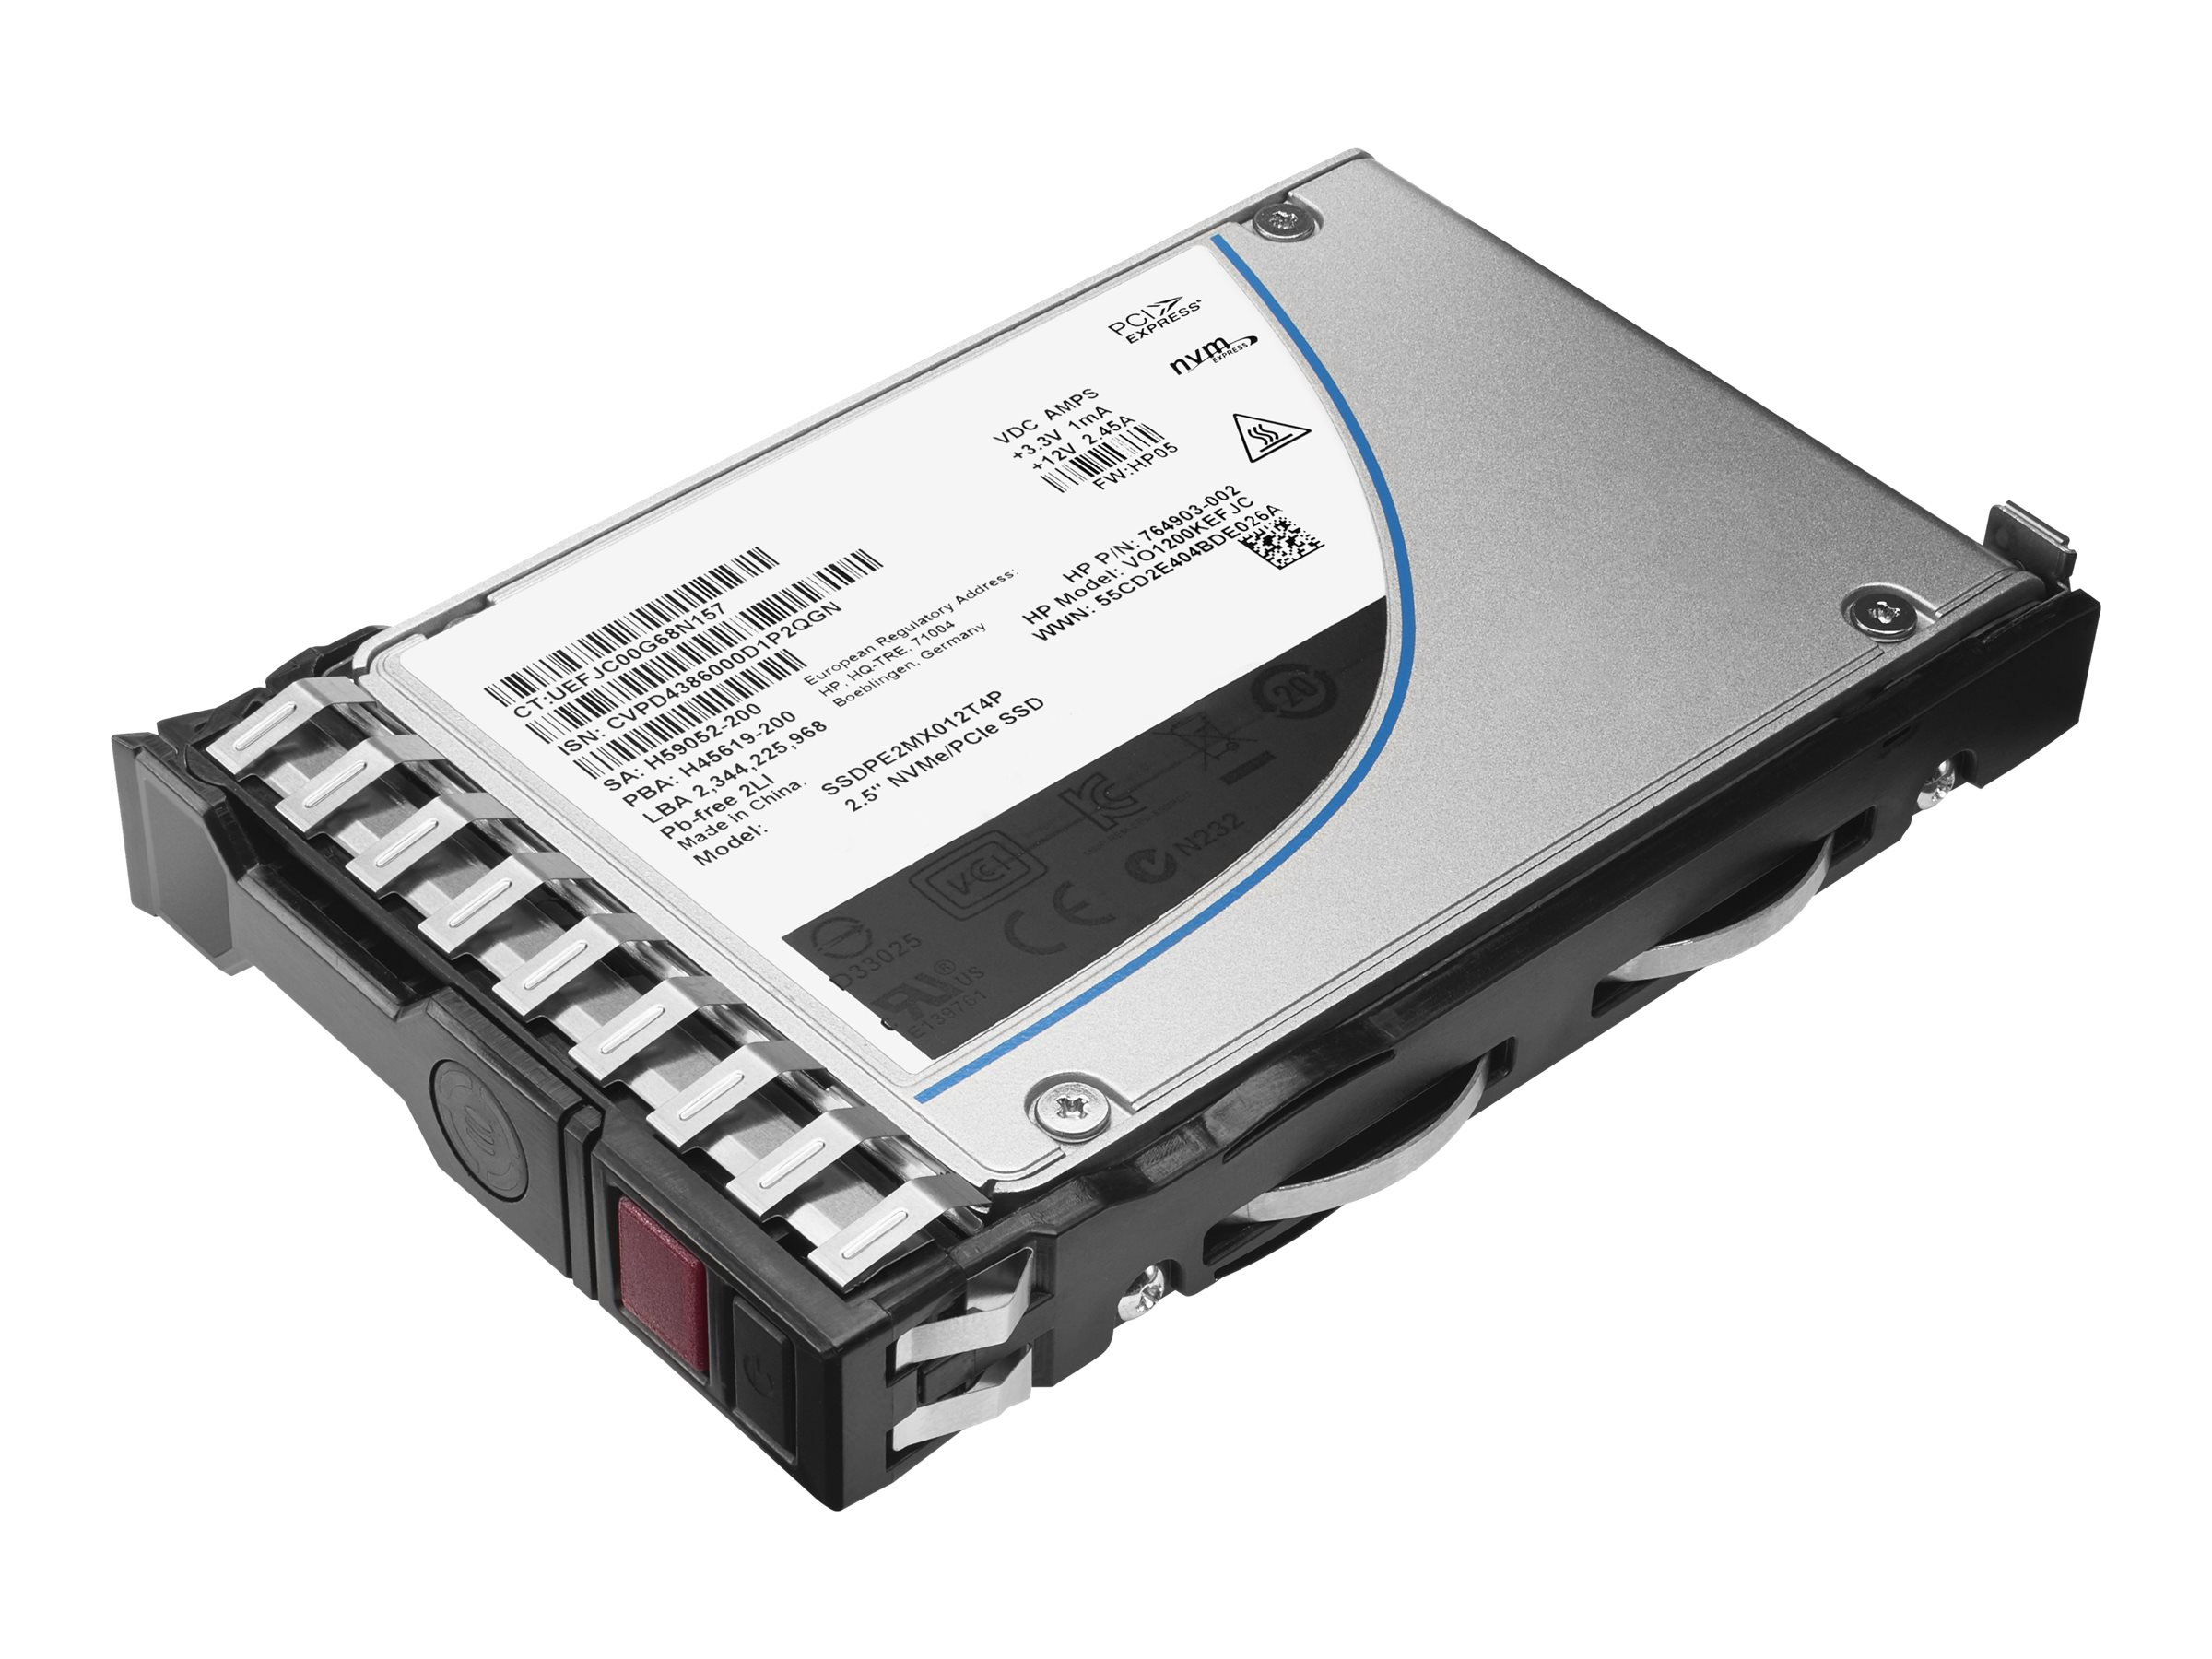 HPE Read Intensive-3 - solid state drive - 120 GB - SATA 6Gb/s